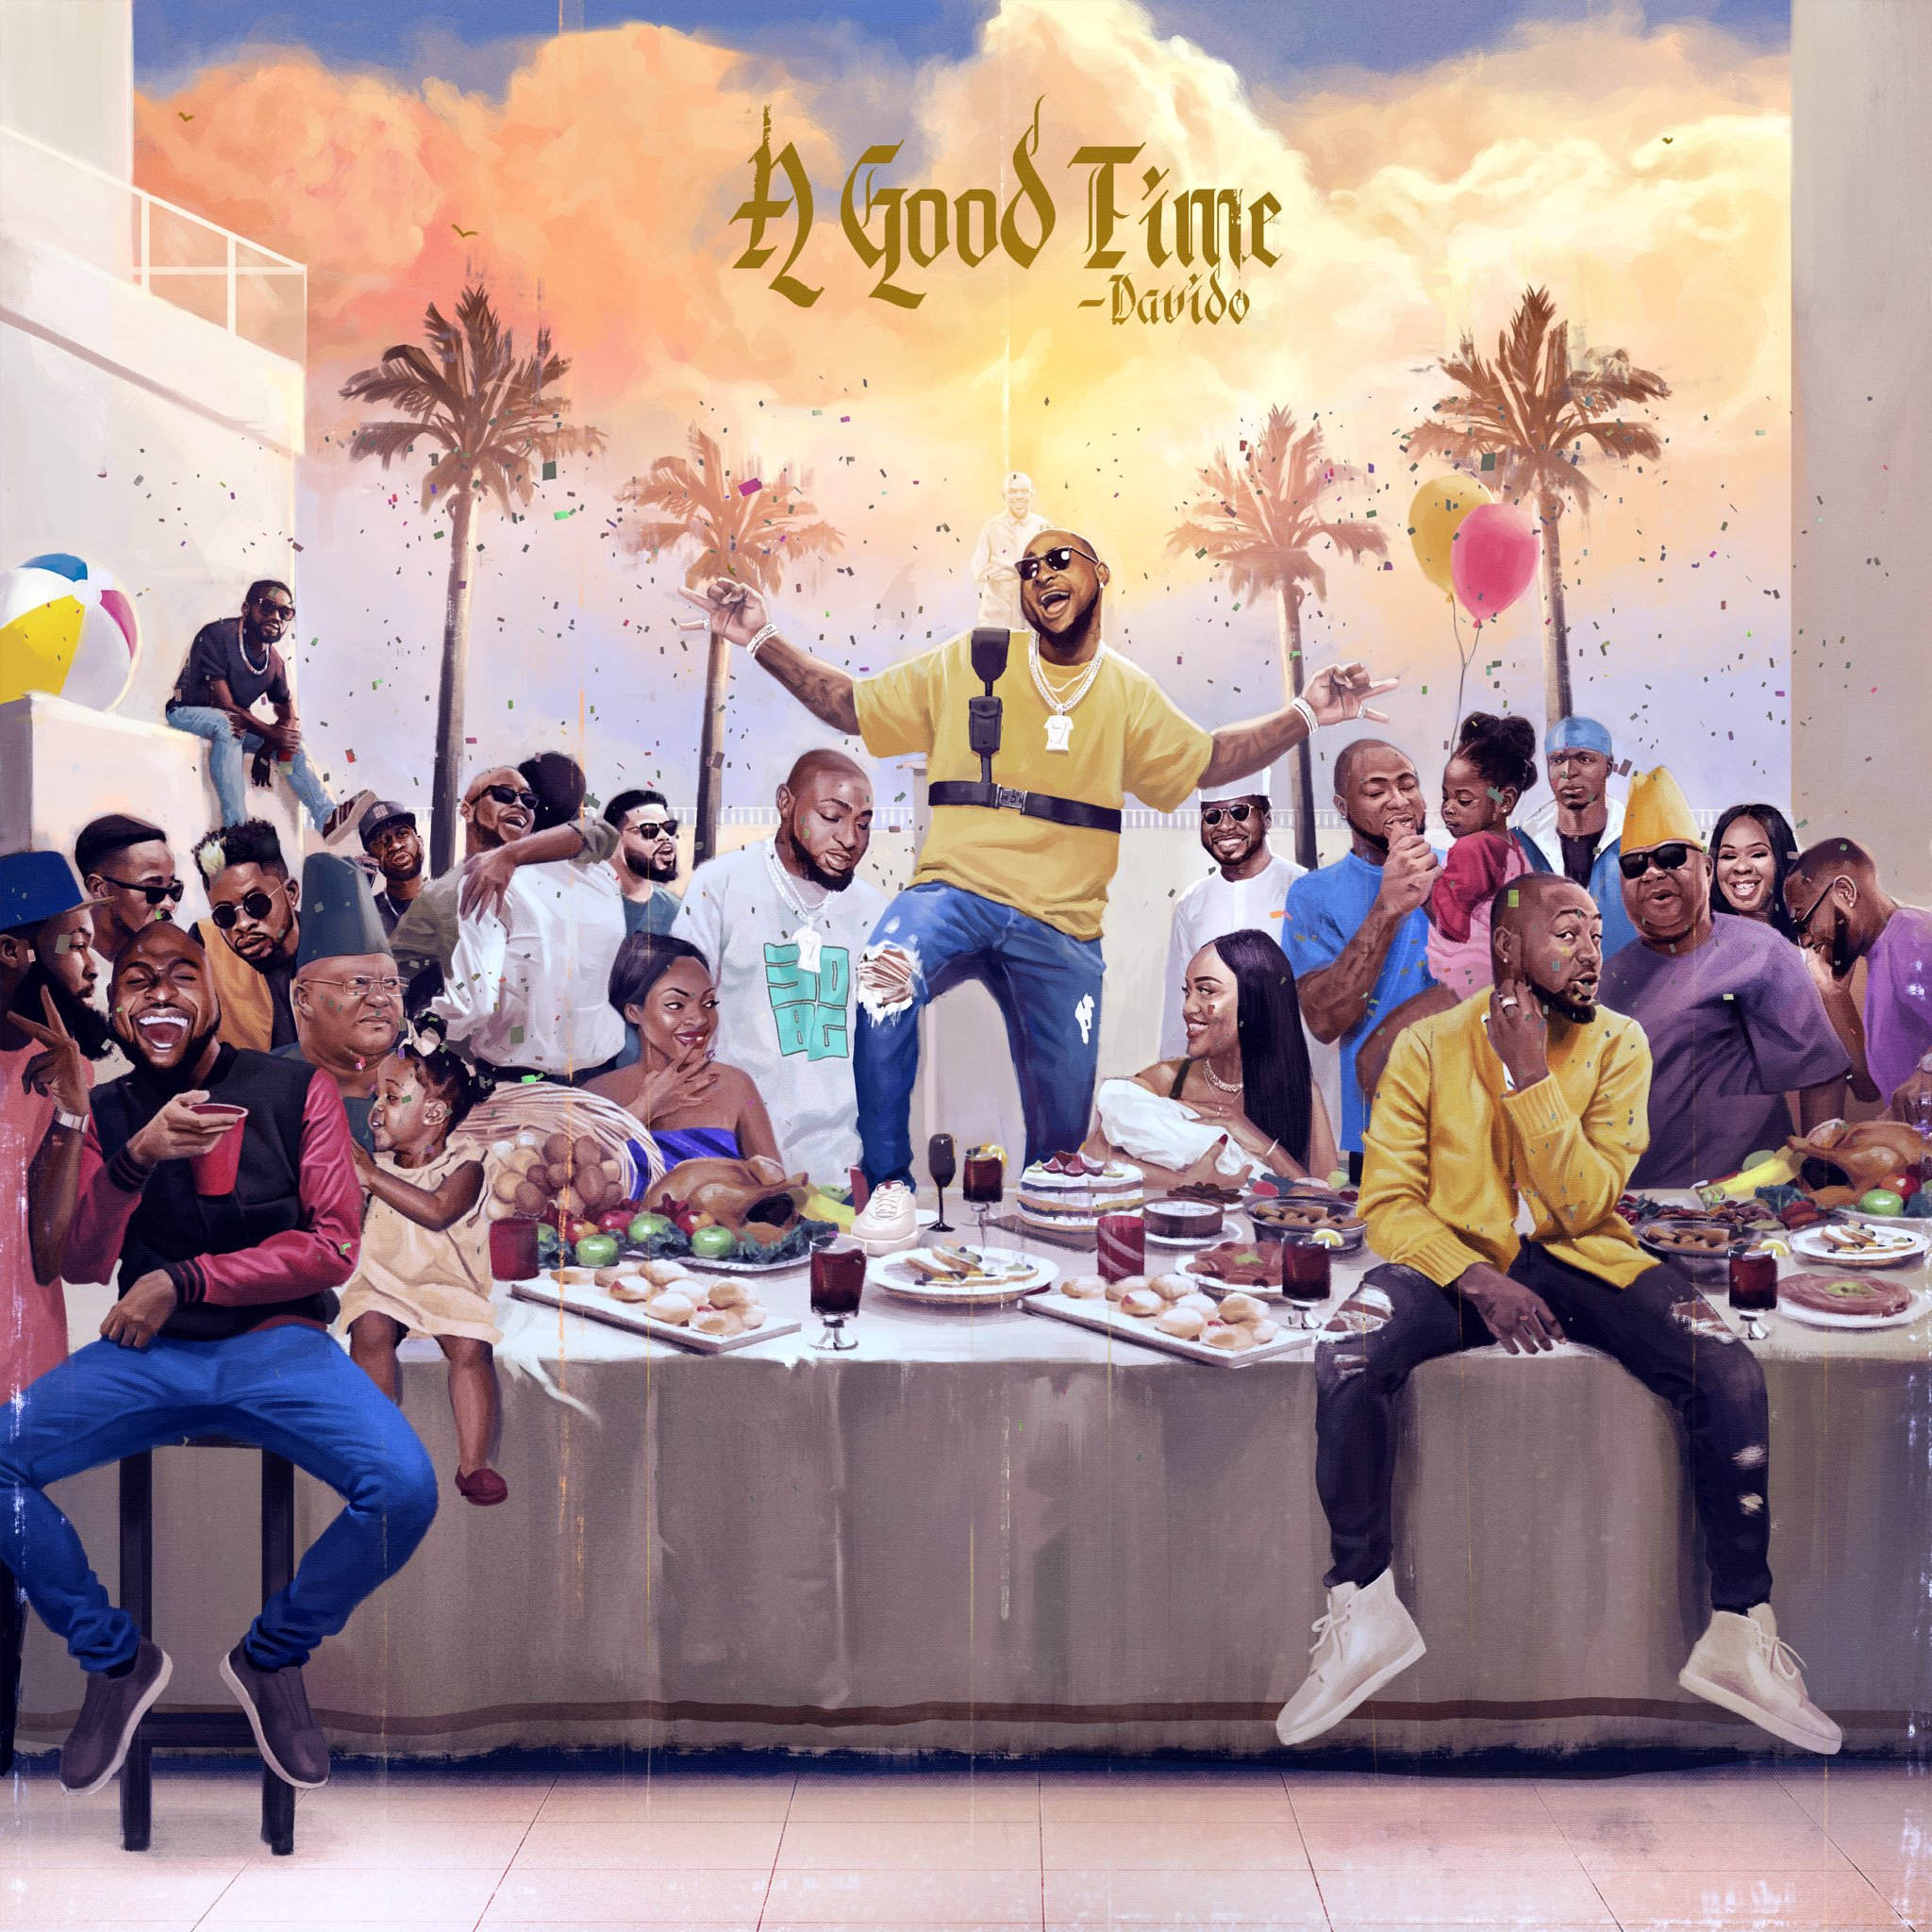 Davido's 'A Good Time' Is His Much-Desired Prosperity Album | Album Review